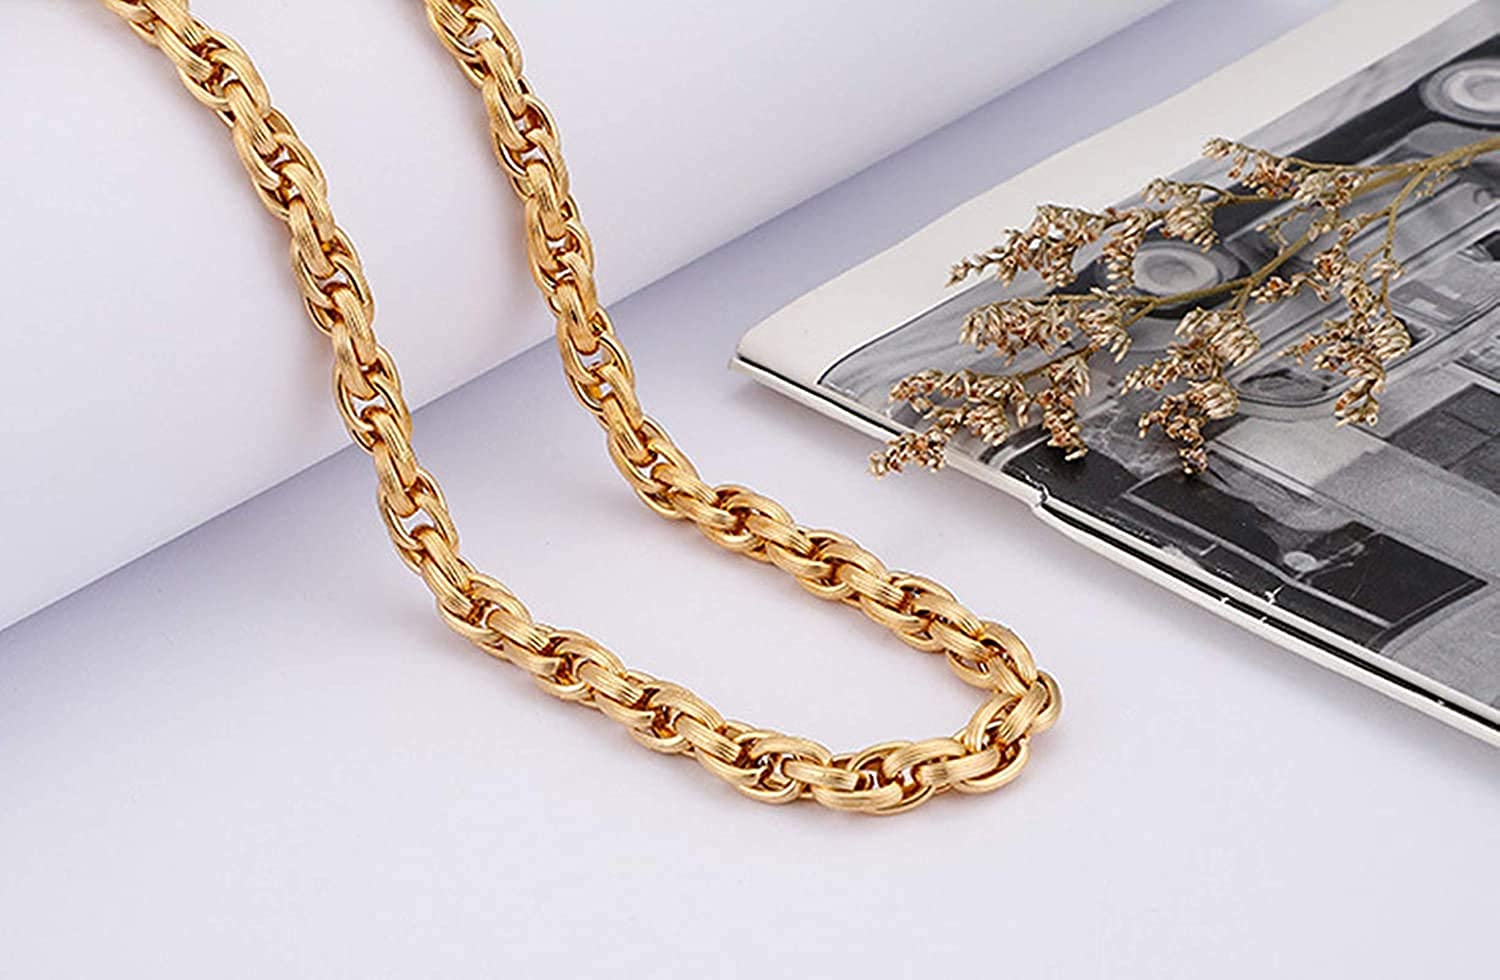 LOPEZ KENT Stainless Steel Necklace Chain for Men Wheat Chain Necklace Black//Silver//Gold//Grey